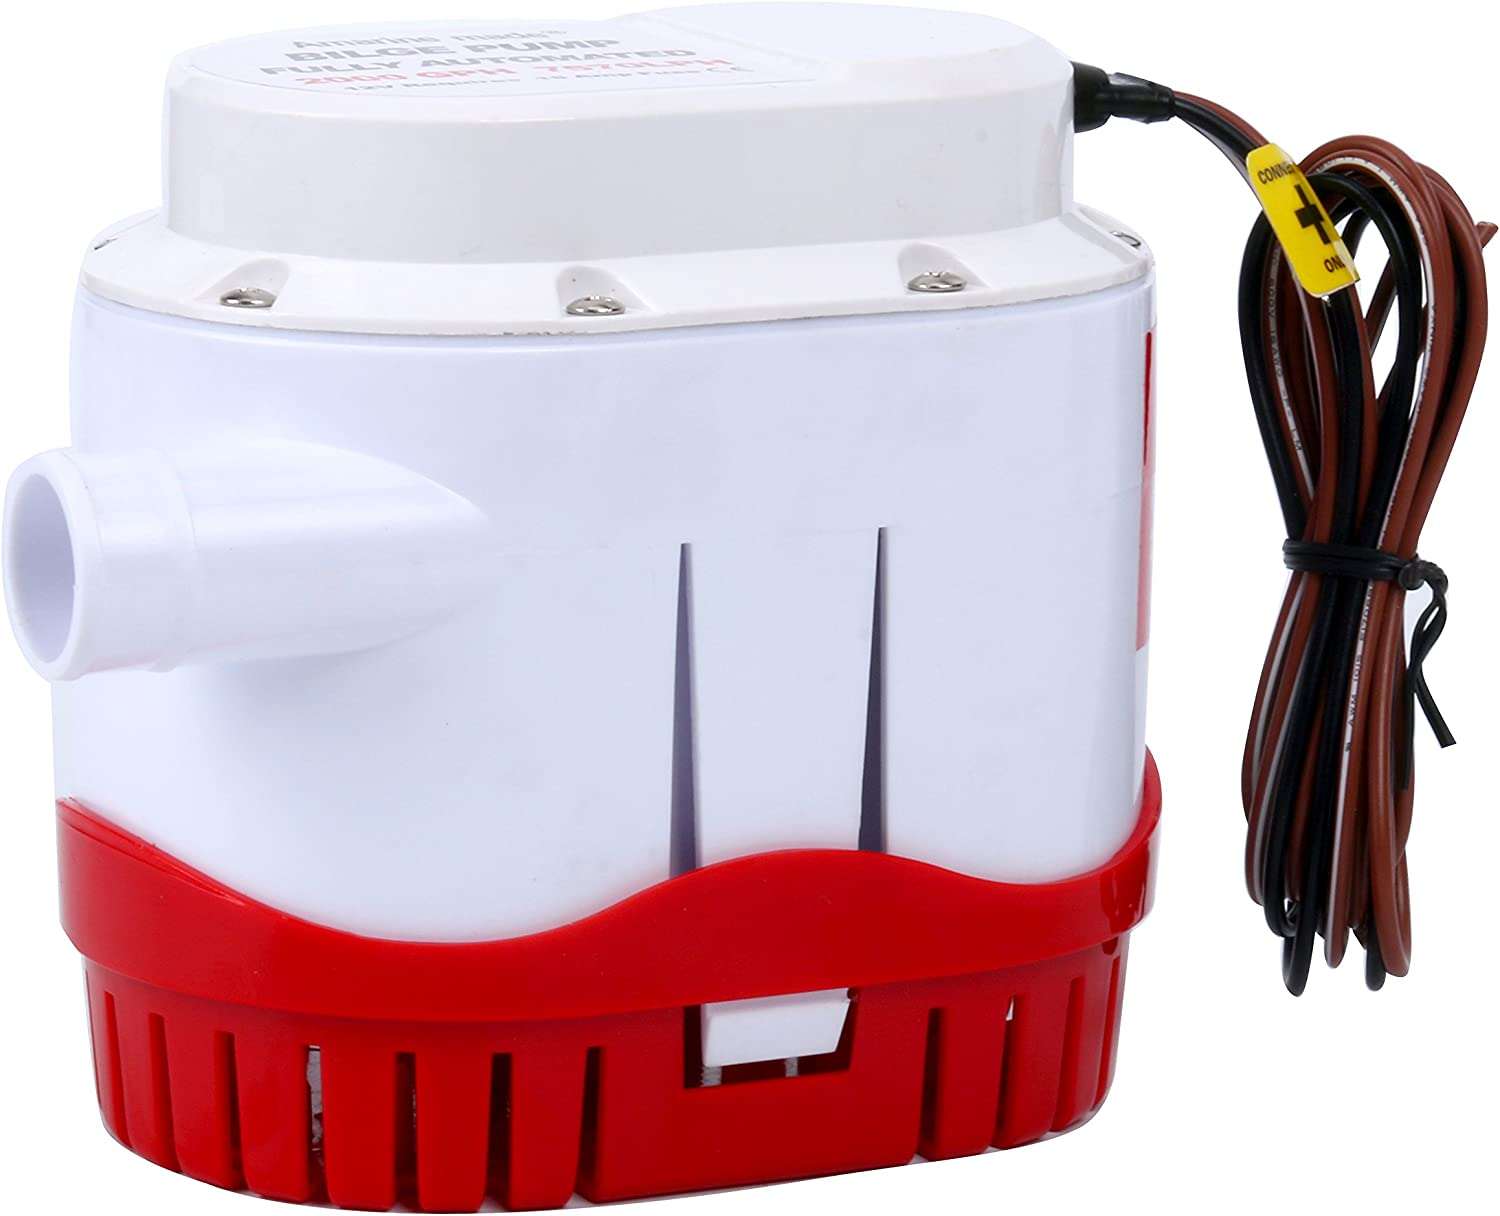 Amarine Made Automatic Submersible Boat In stock Water Fees free!! 200 12v Bilge Pump